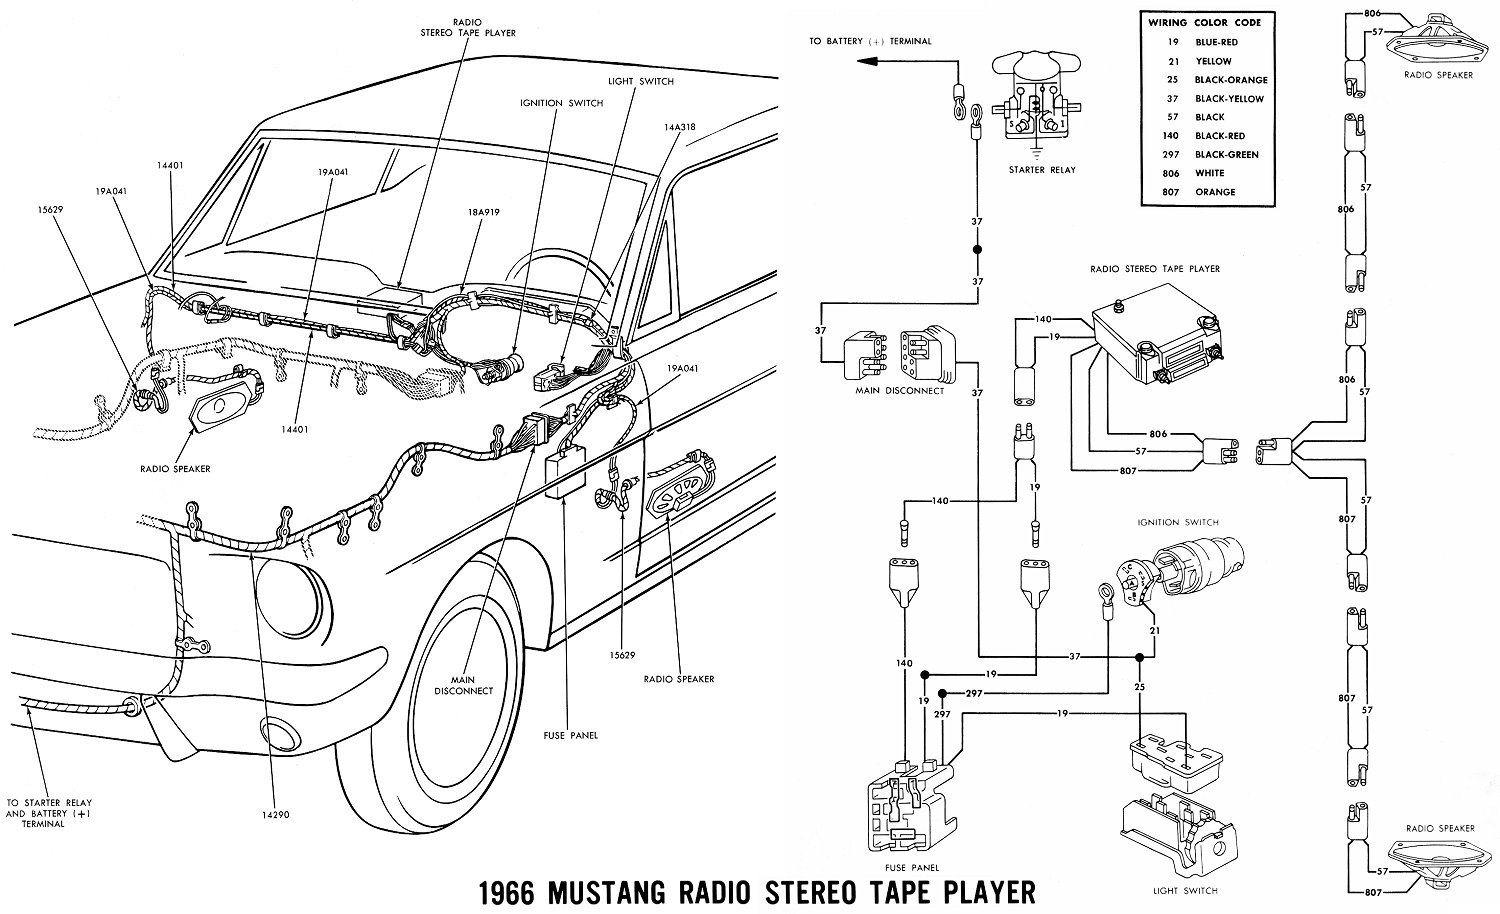 1980 Mustang Ignition Wiring Diagram Completed Diagrams Radio 1969 Ford Guage Cluster Rh Banyan Palace Com Cop